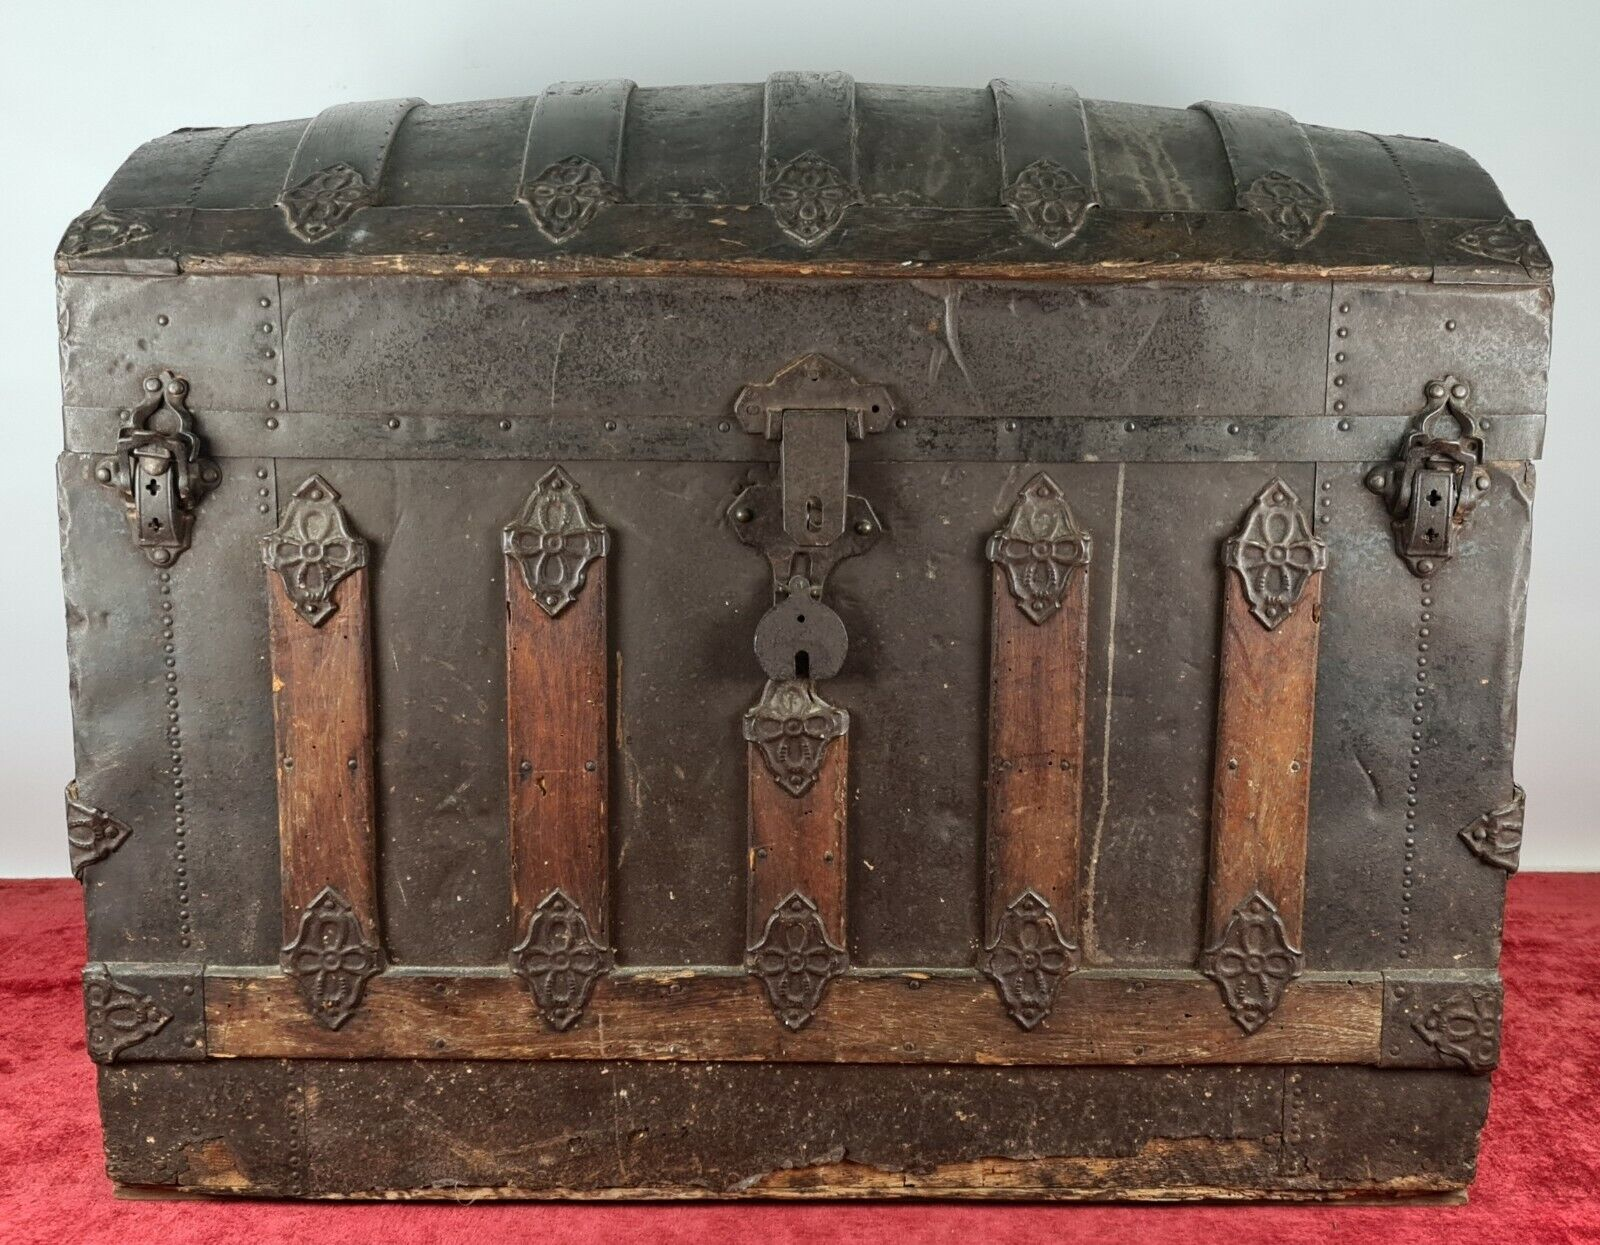 PORTMANTEAU. WOOD COVERED IN METAL ENGRAVED WITH FLORAL PATTERNS. XIX CENTURY.